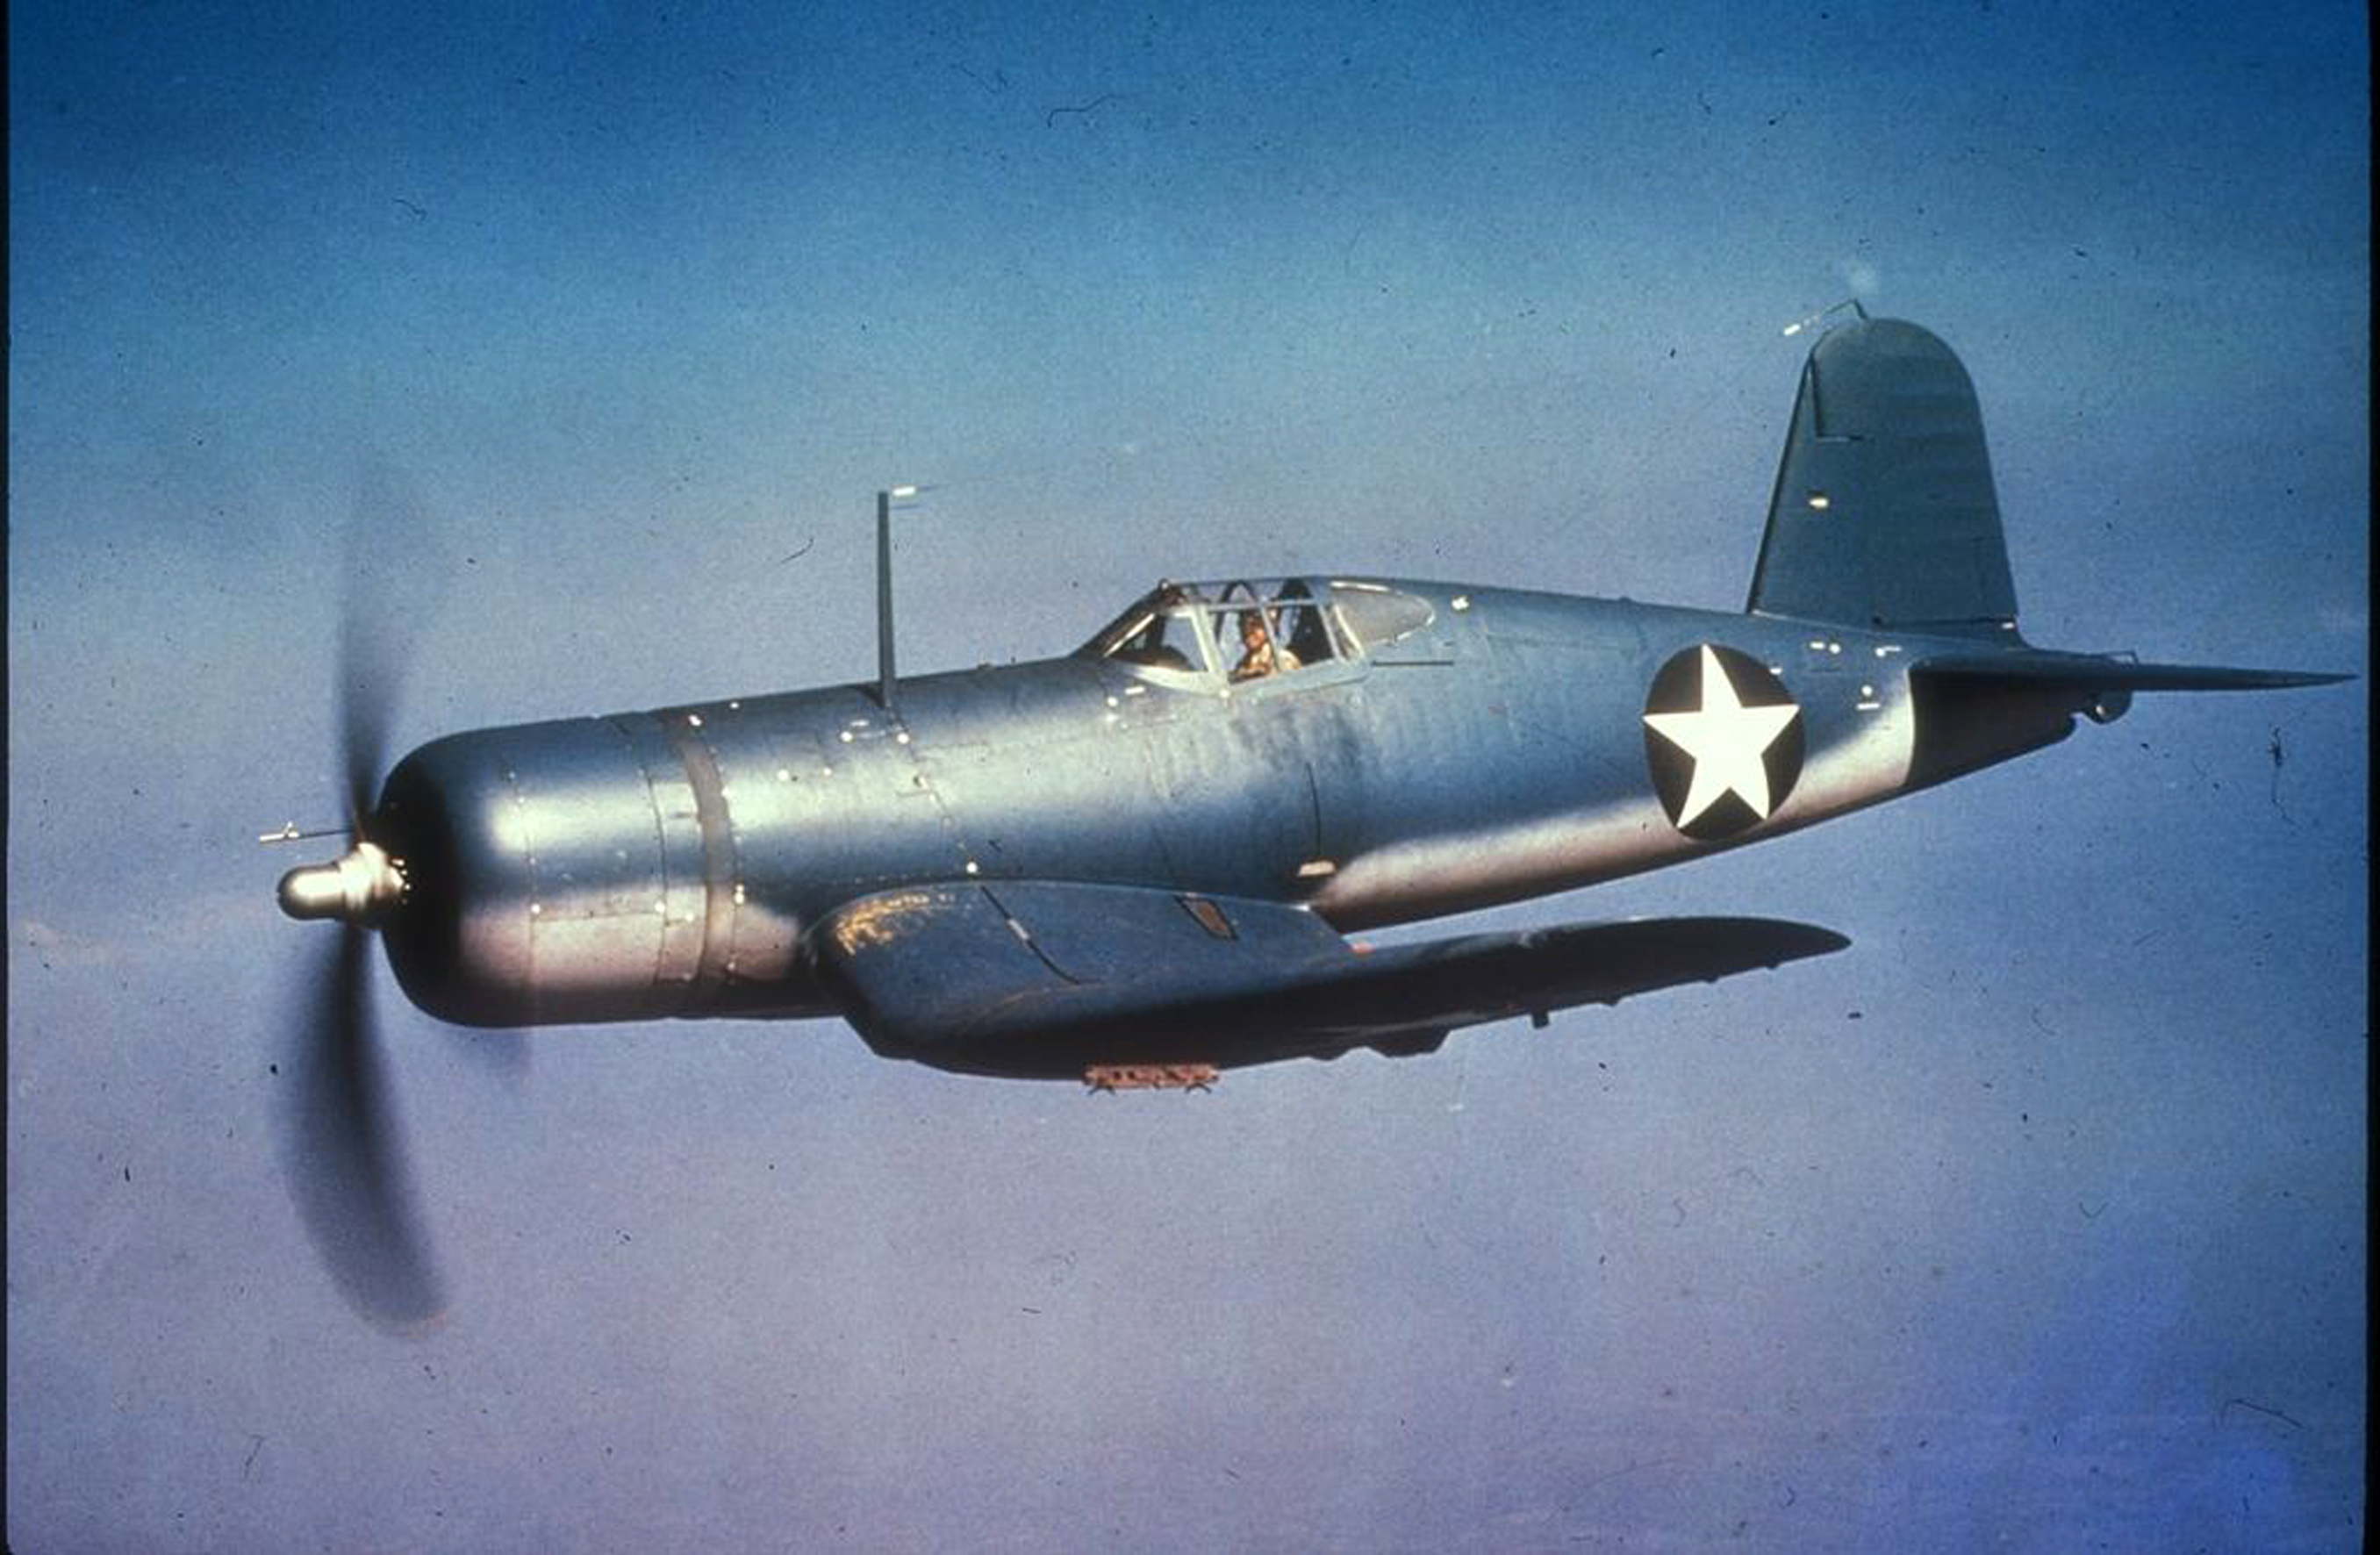 https://upload.wikimedia.org/wikipedia/commons/2/2f/F4U-1_Corsair_in_flight_c1942.jpg